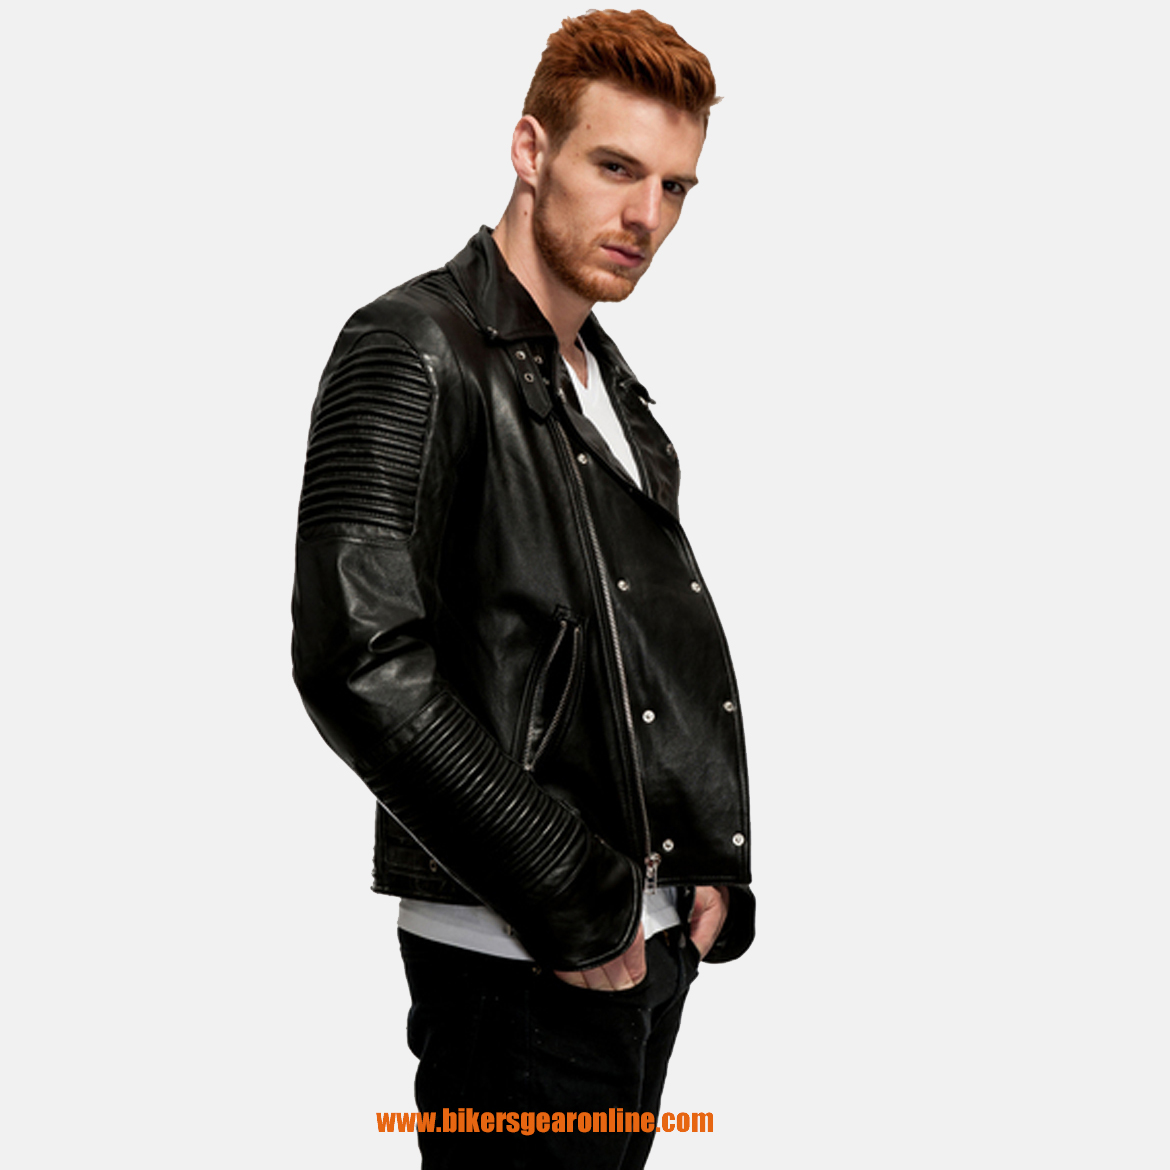 Old School Butter Soft Leather Jacket Slim Style Bikers